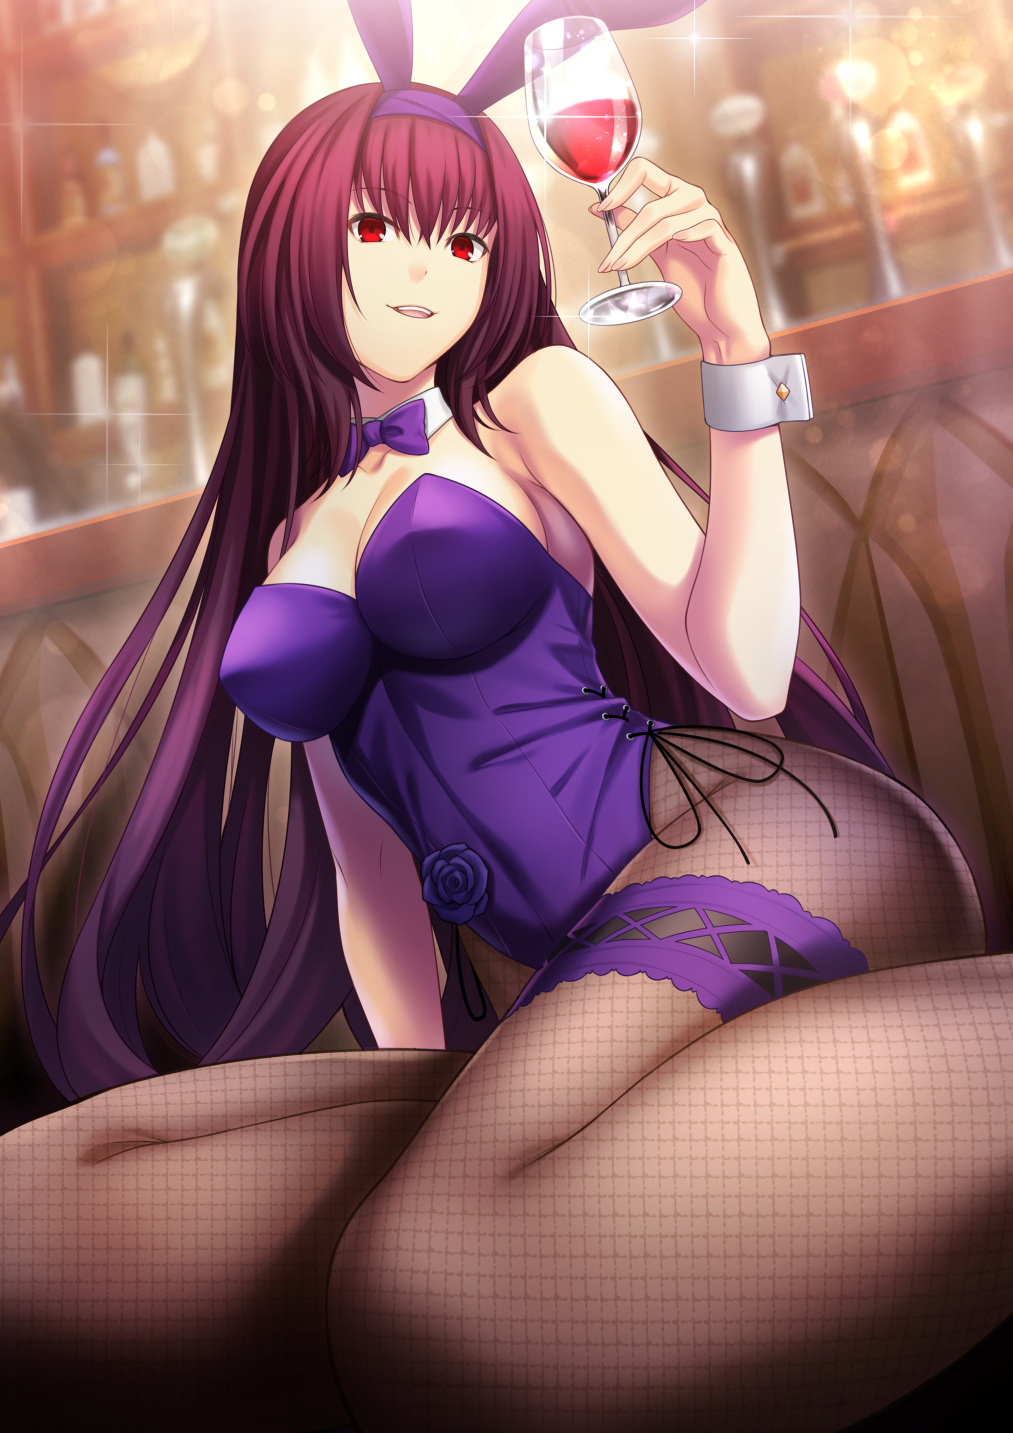 animal_ears bunny_girl bunnysuit cup detached_collar drinking_glass fake_animal_ears fate/grand_order fate_(series) fishnet_legwear fishnets highres leotard long_hair piercing_bunny purple_hair purple_leotard purple_neckwear rabbit_ears red_eyes scathach_(fate)_(all) scathach_(fate/grand_order) strapless strapless_leotard tawagoto_dukai_no_deshi wine_glass wrist_cuffs